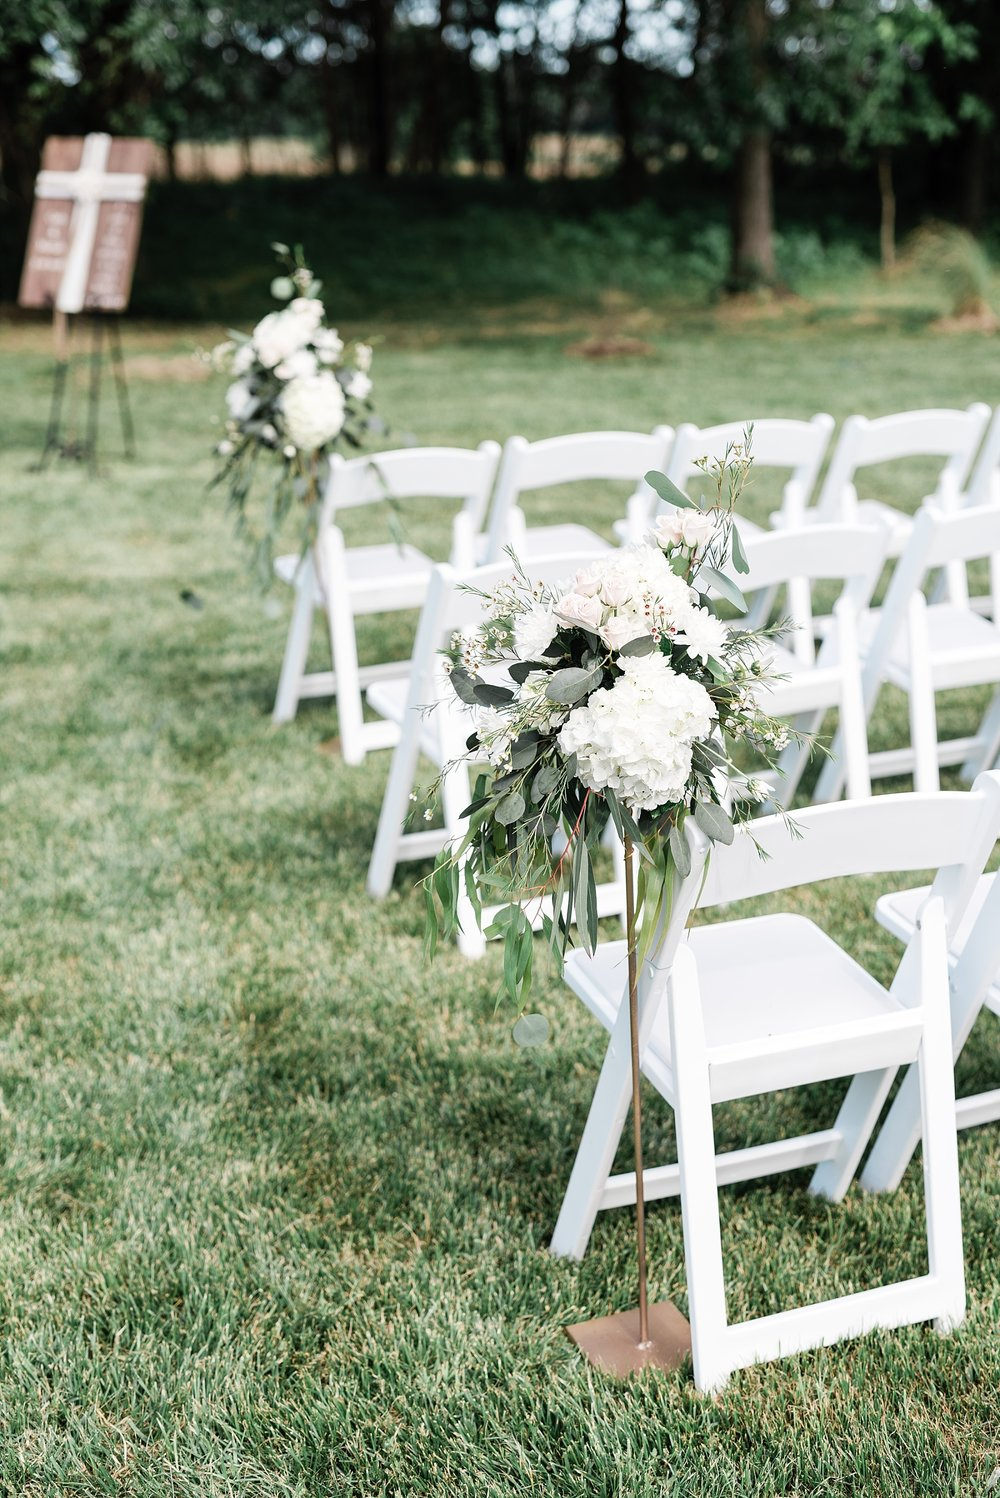 Stunning Heartfelt, Elegant, Fine Art, Chic, Outdoor Spring Wedding with Blush, Cream, Greenery, Rose Gold, and Sequins at Emerson Fields Venue by Kelsi Kliethermes Photography_0042.jpg